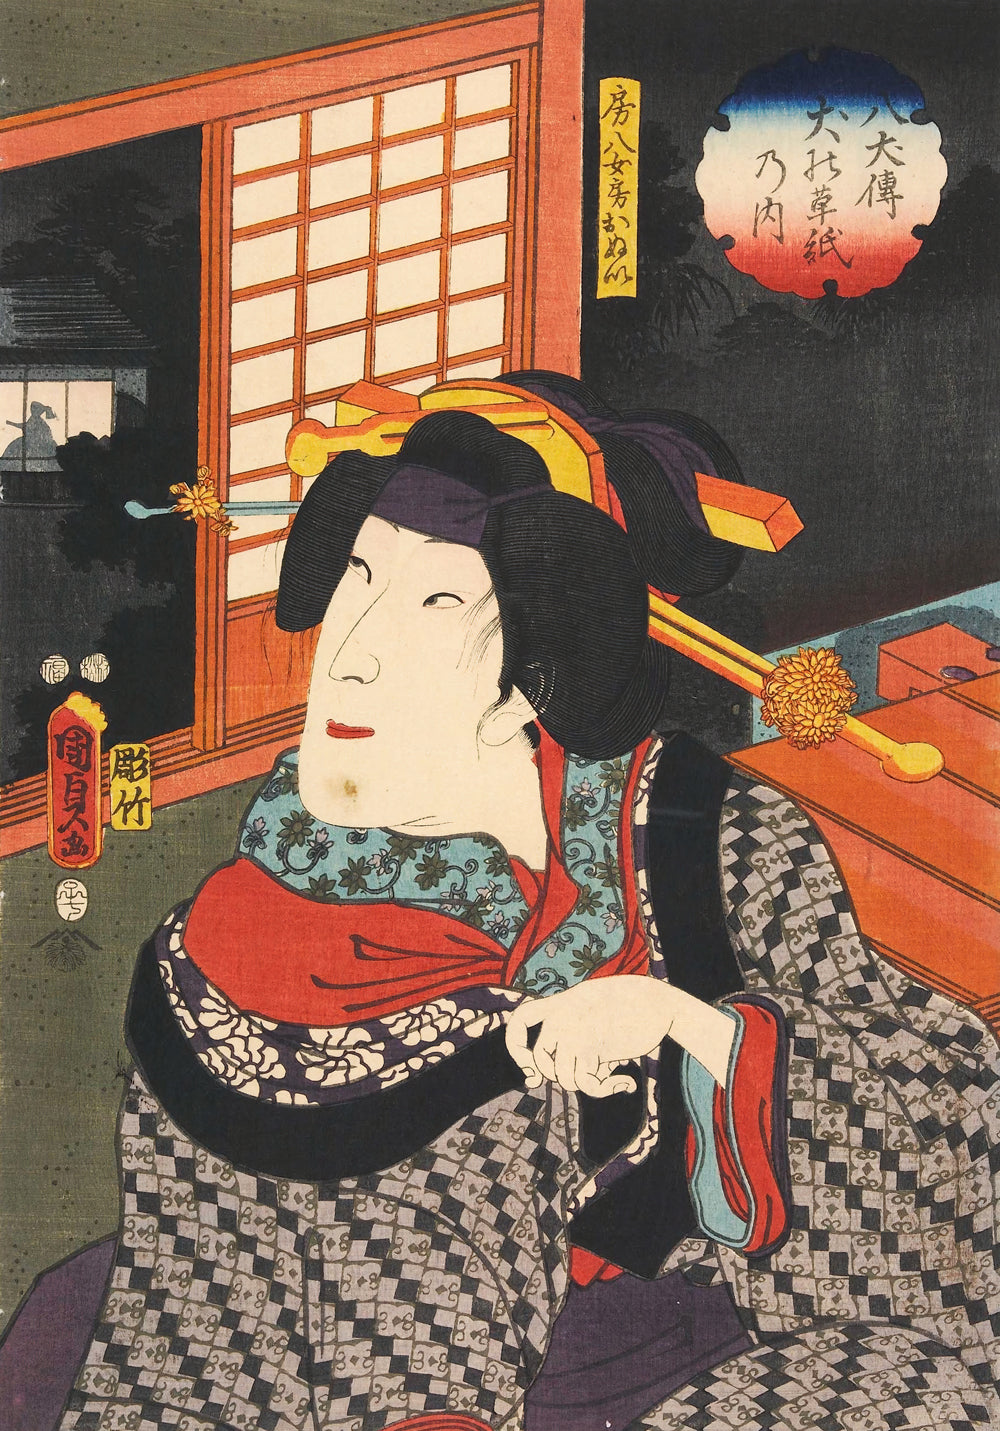 ONOE KIKUJIRO II AS FUSAHACHI'S WIFE NUI (1852)